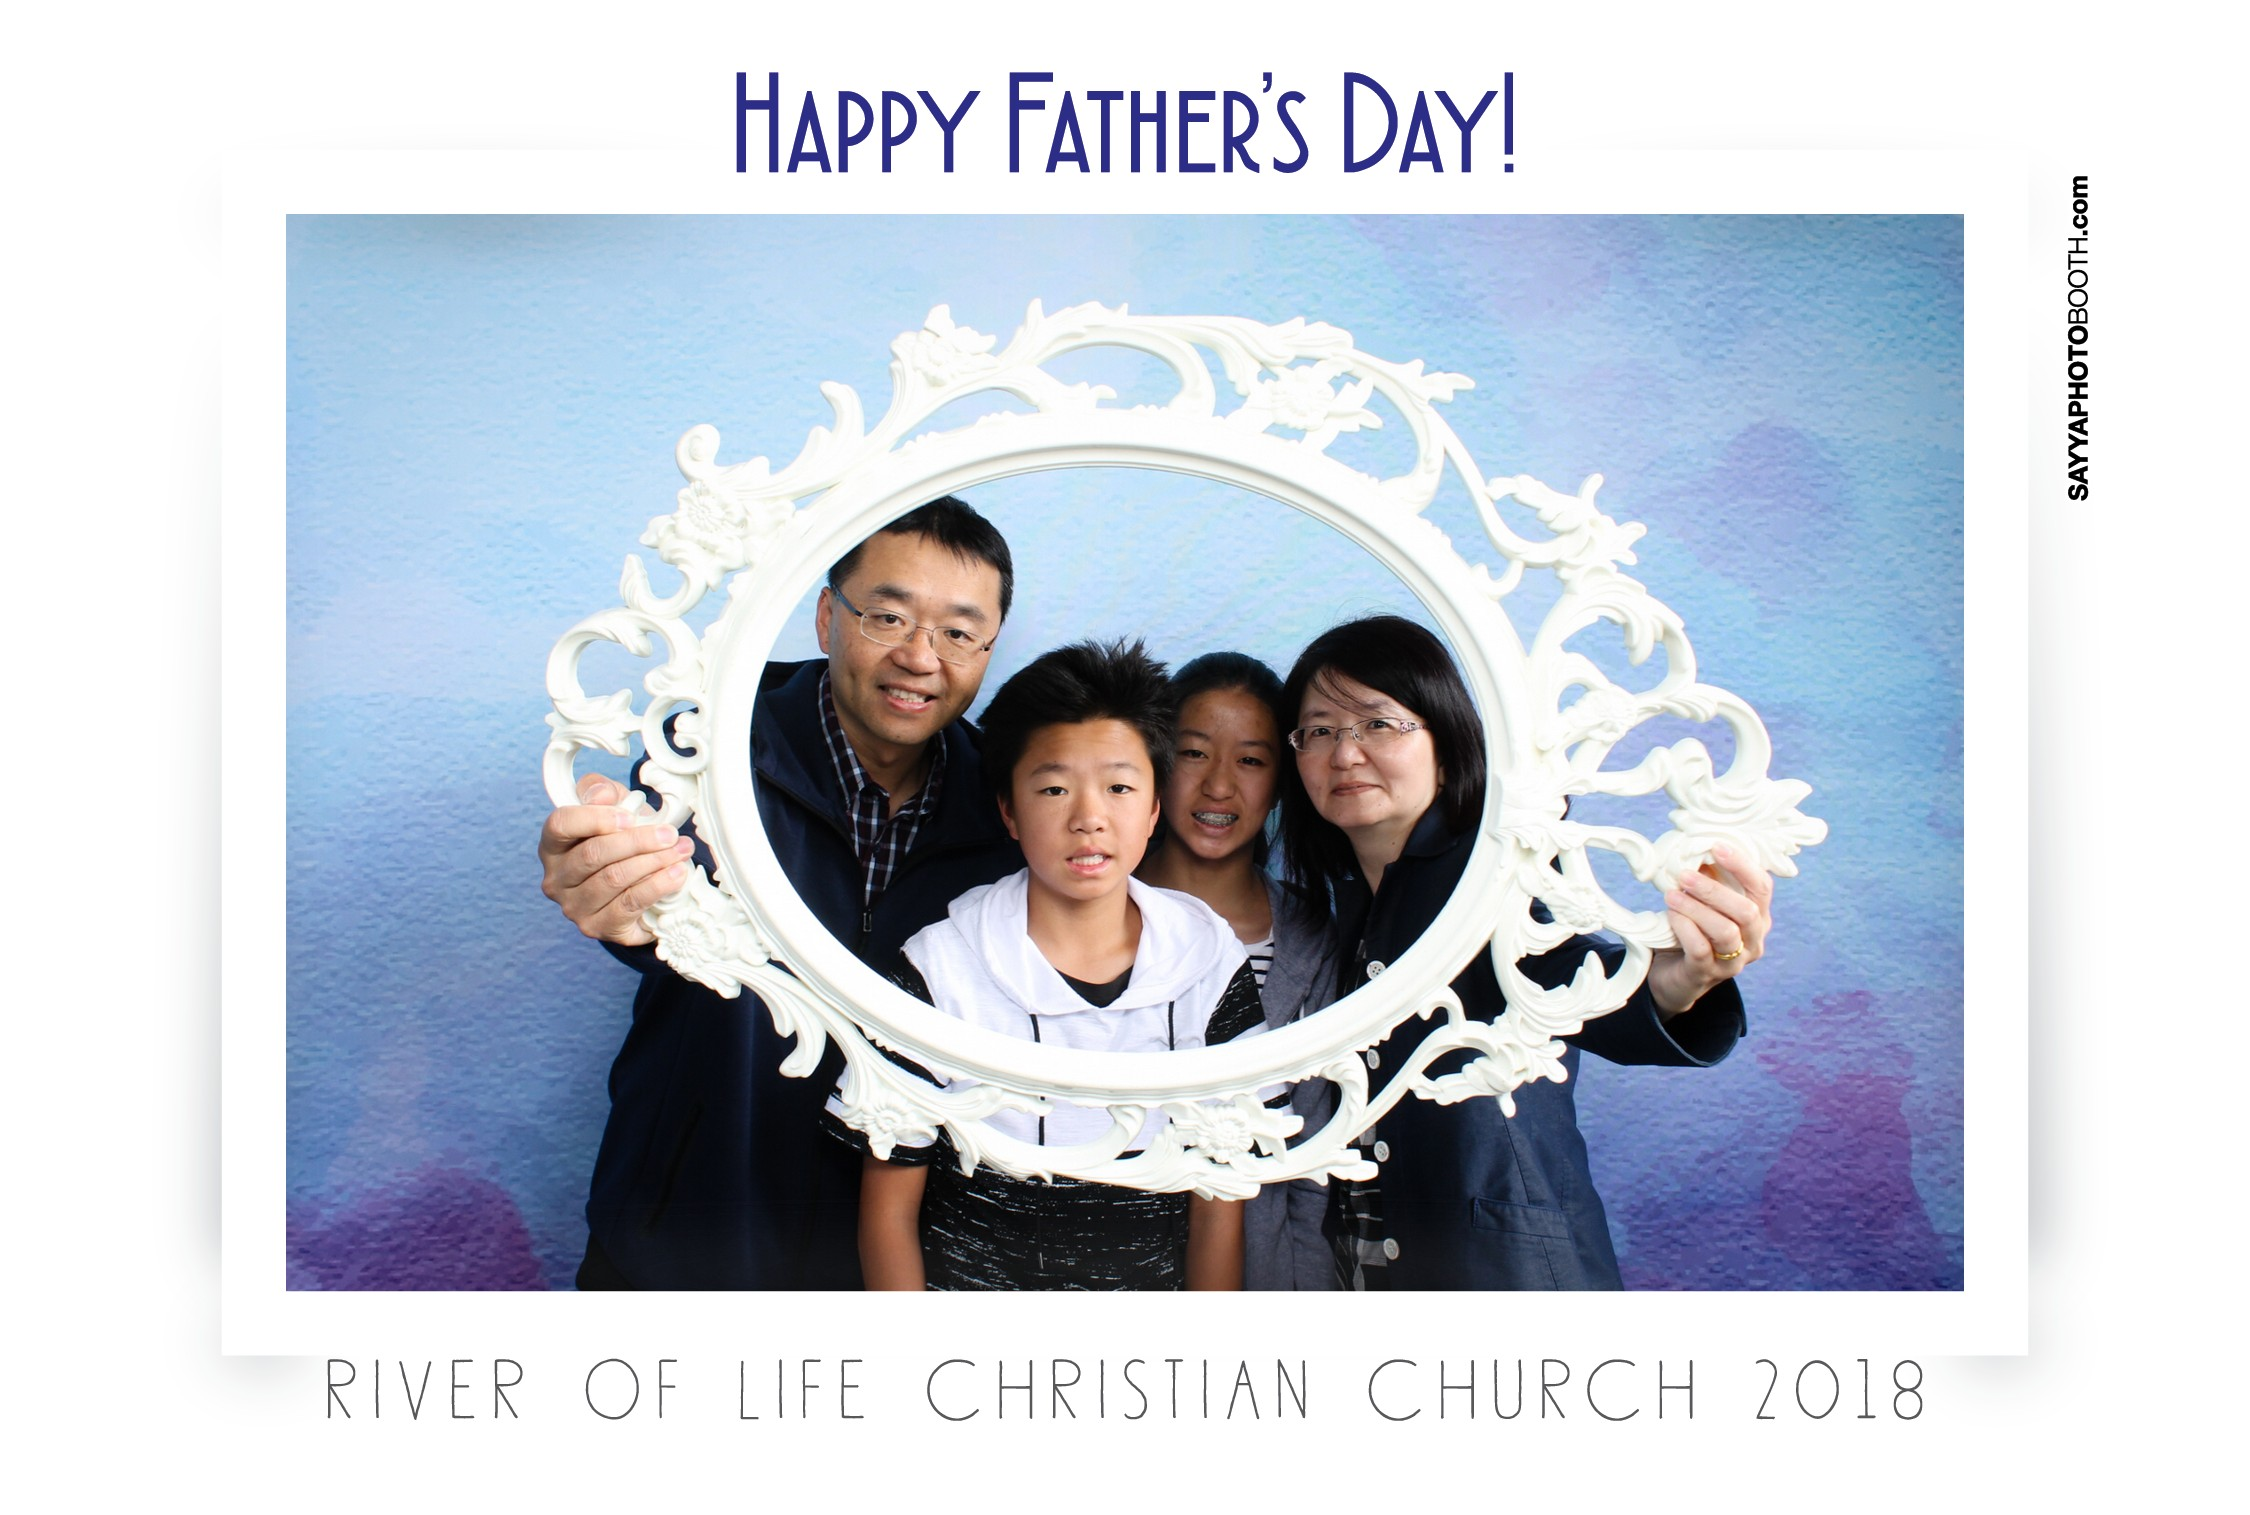 River of Life Christian Church - B3